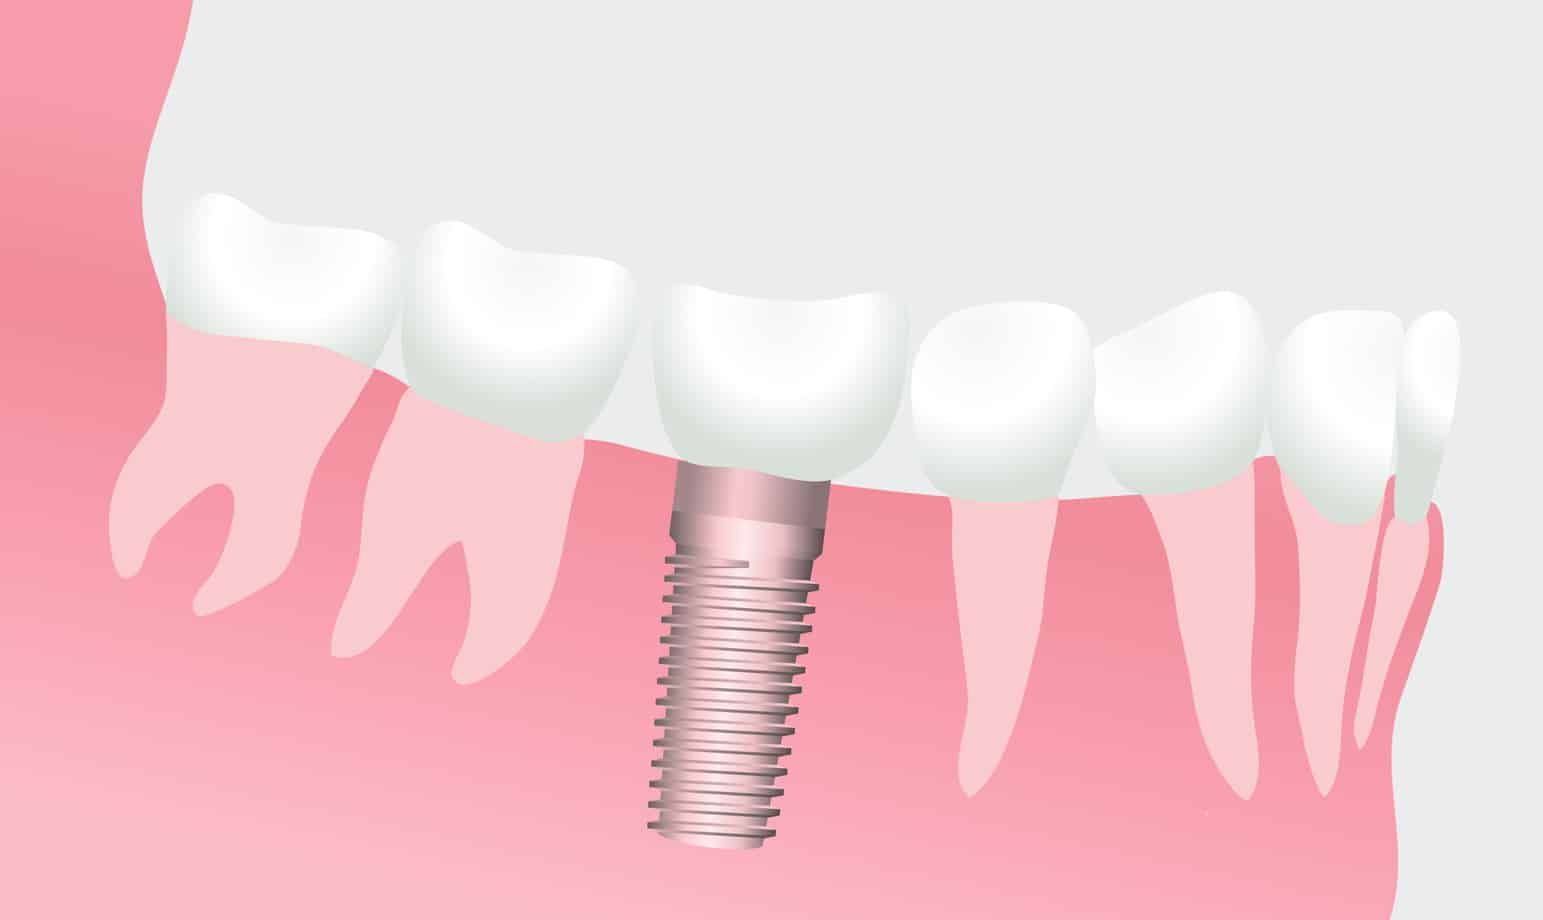 Illustration of a dental implant in a patient's gumline to replace a missing tooth